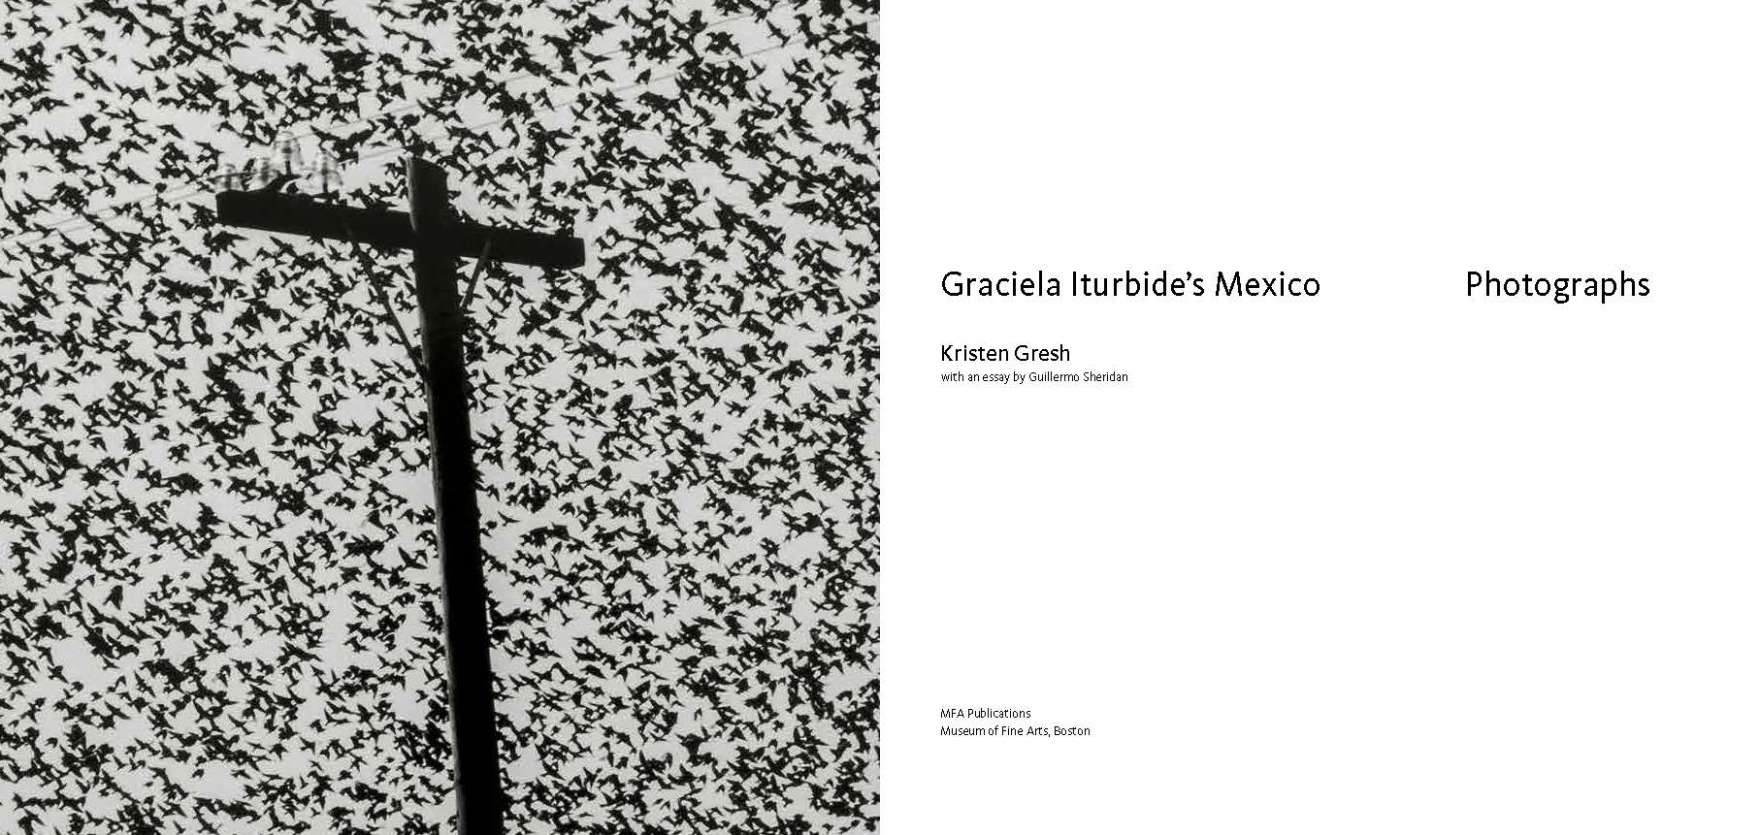 Title page of Graciela Iturbide's Mexico. Photo of flock of birds in the sky on left.